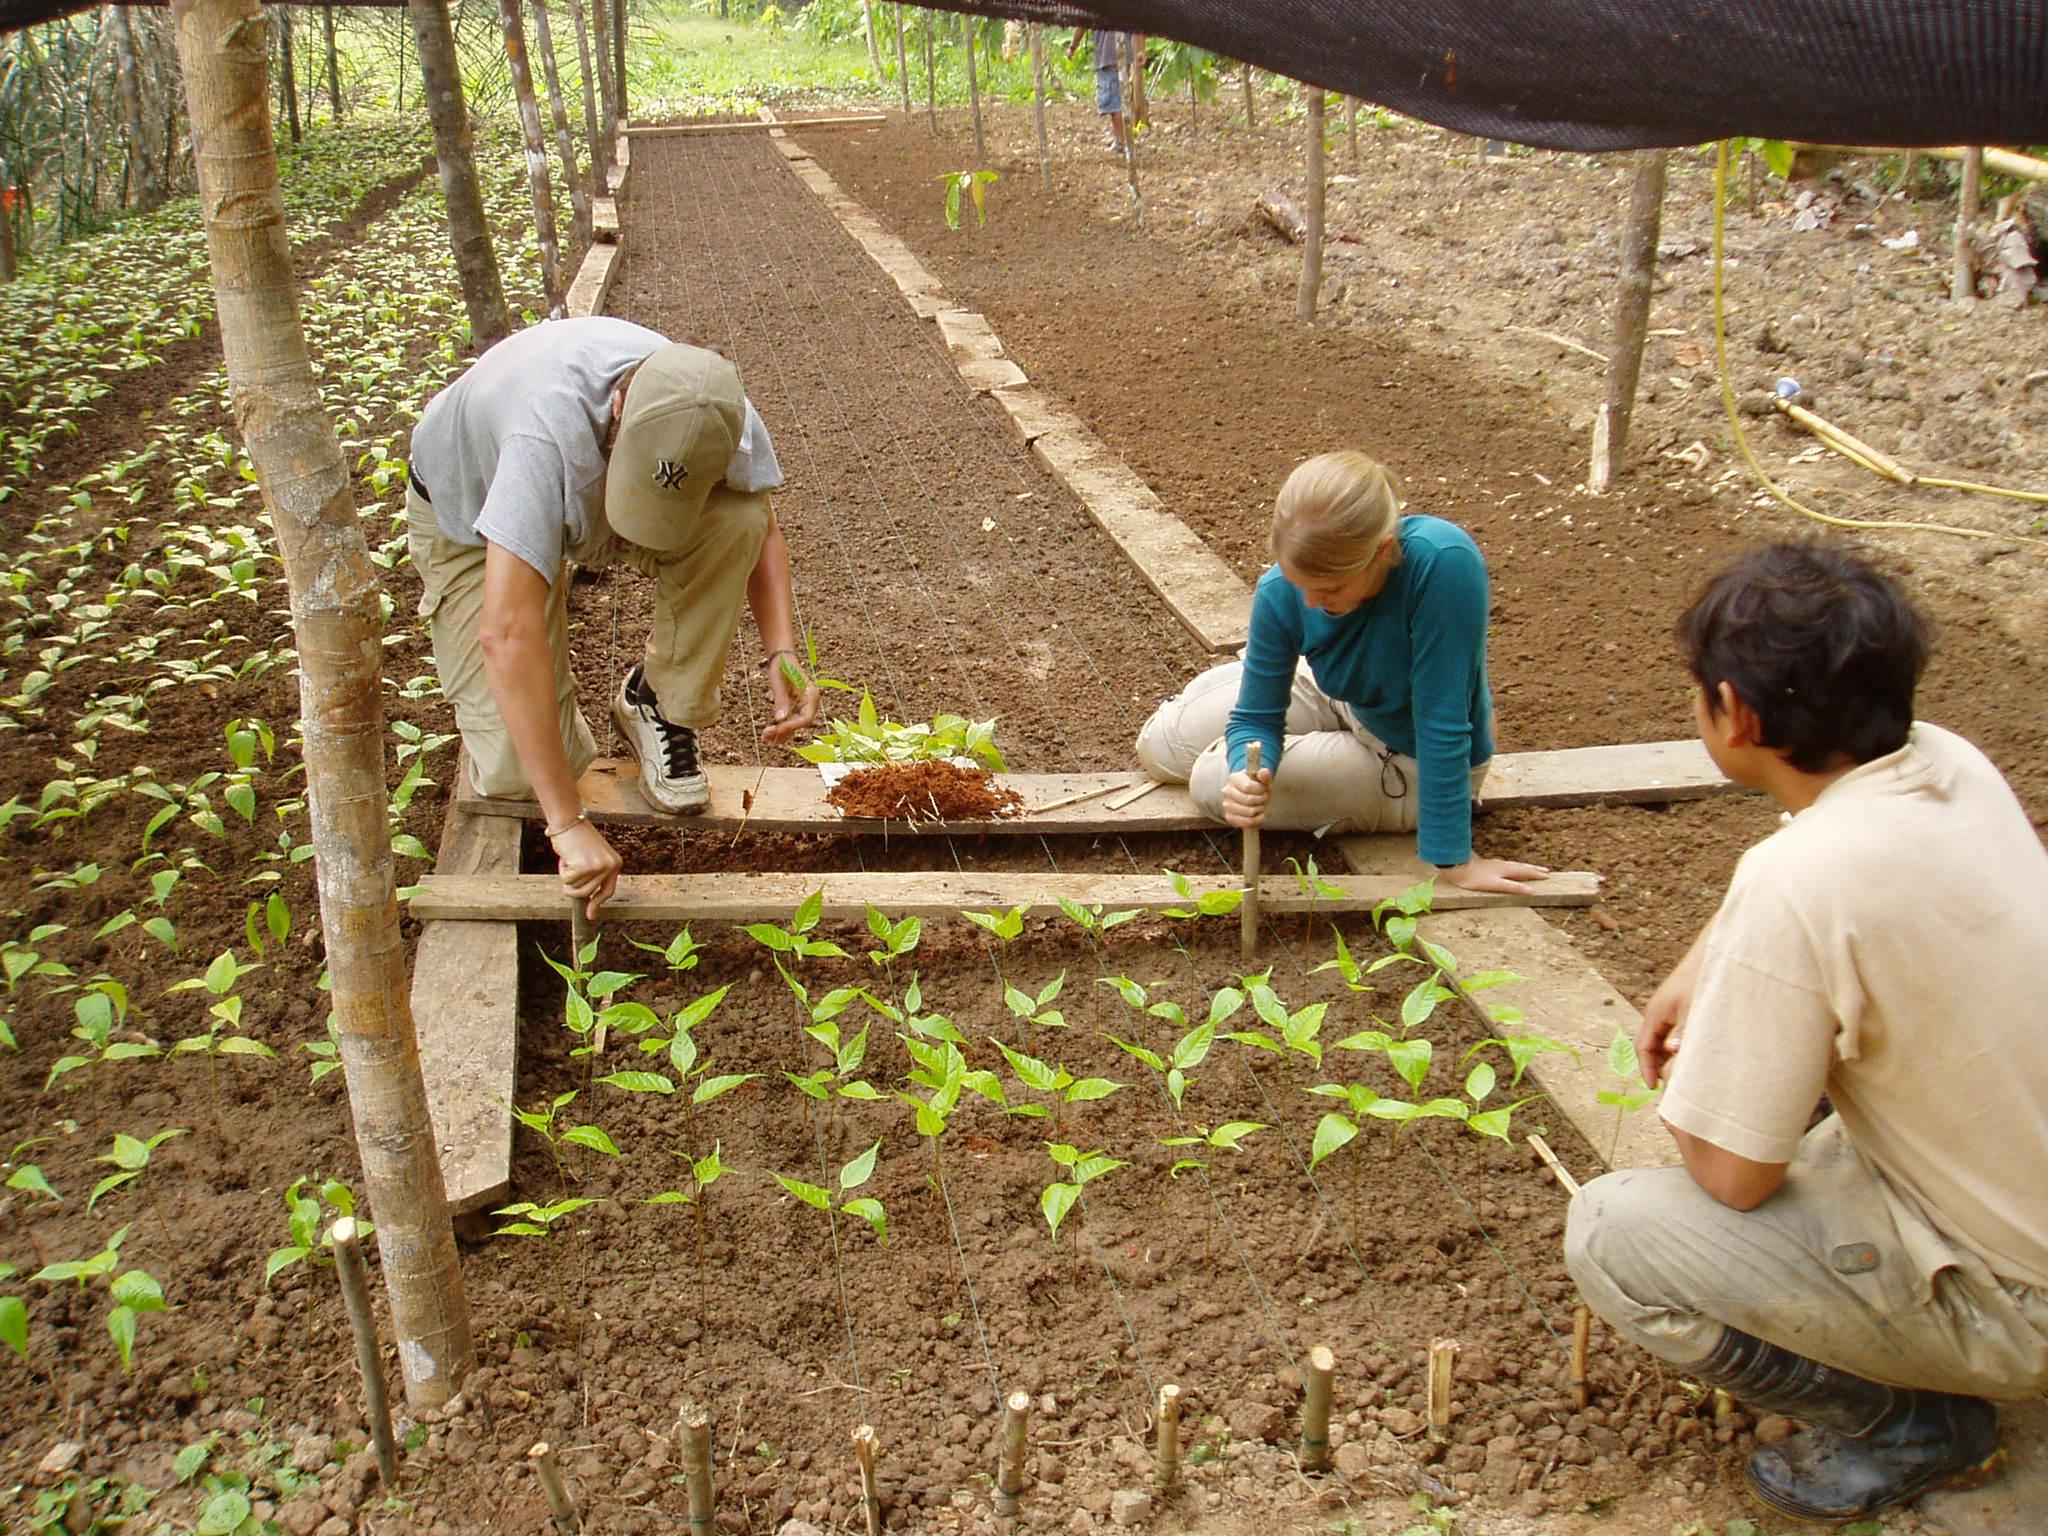 Projects Abroad volunteers are pictured planting new plants at a local nursery as part of their rainforest conservation work in Peru.